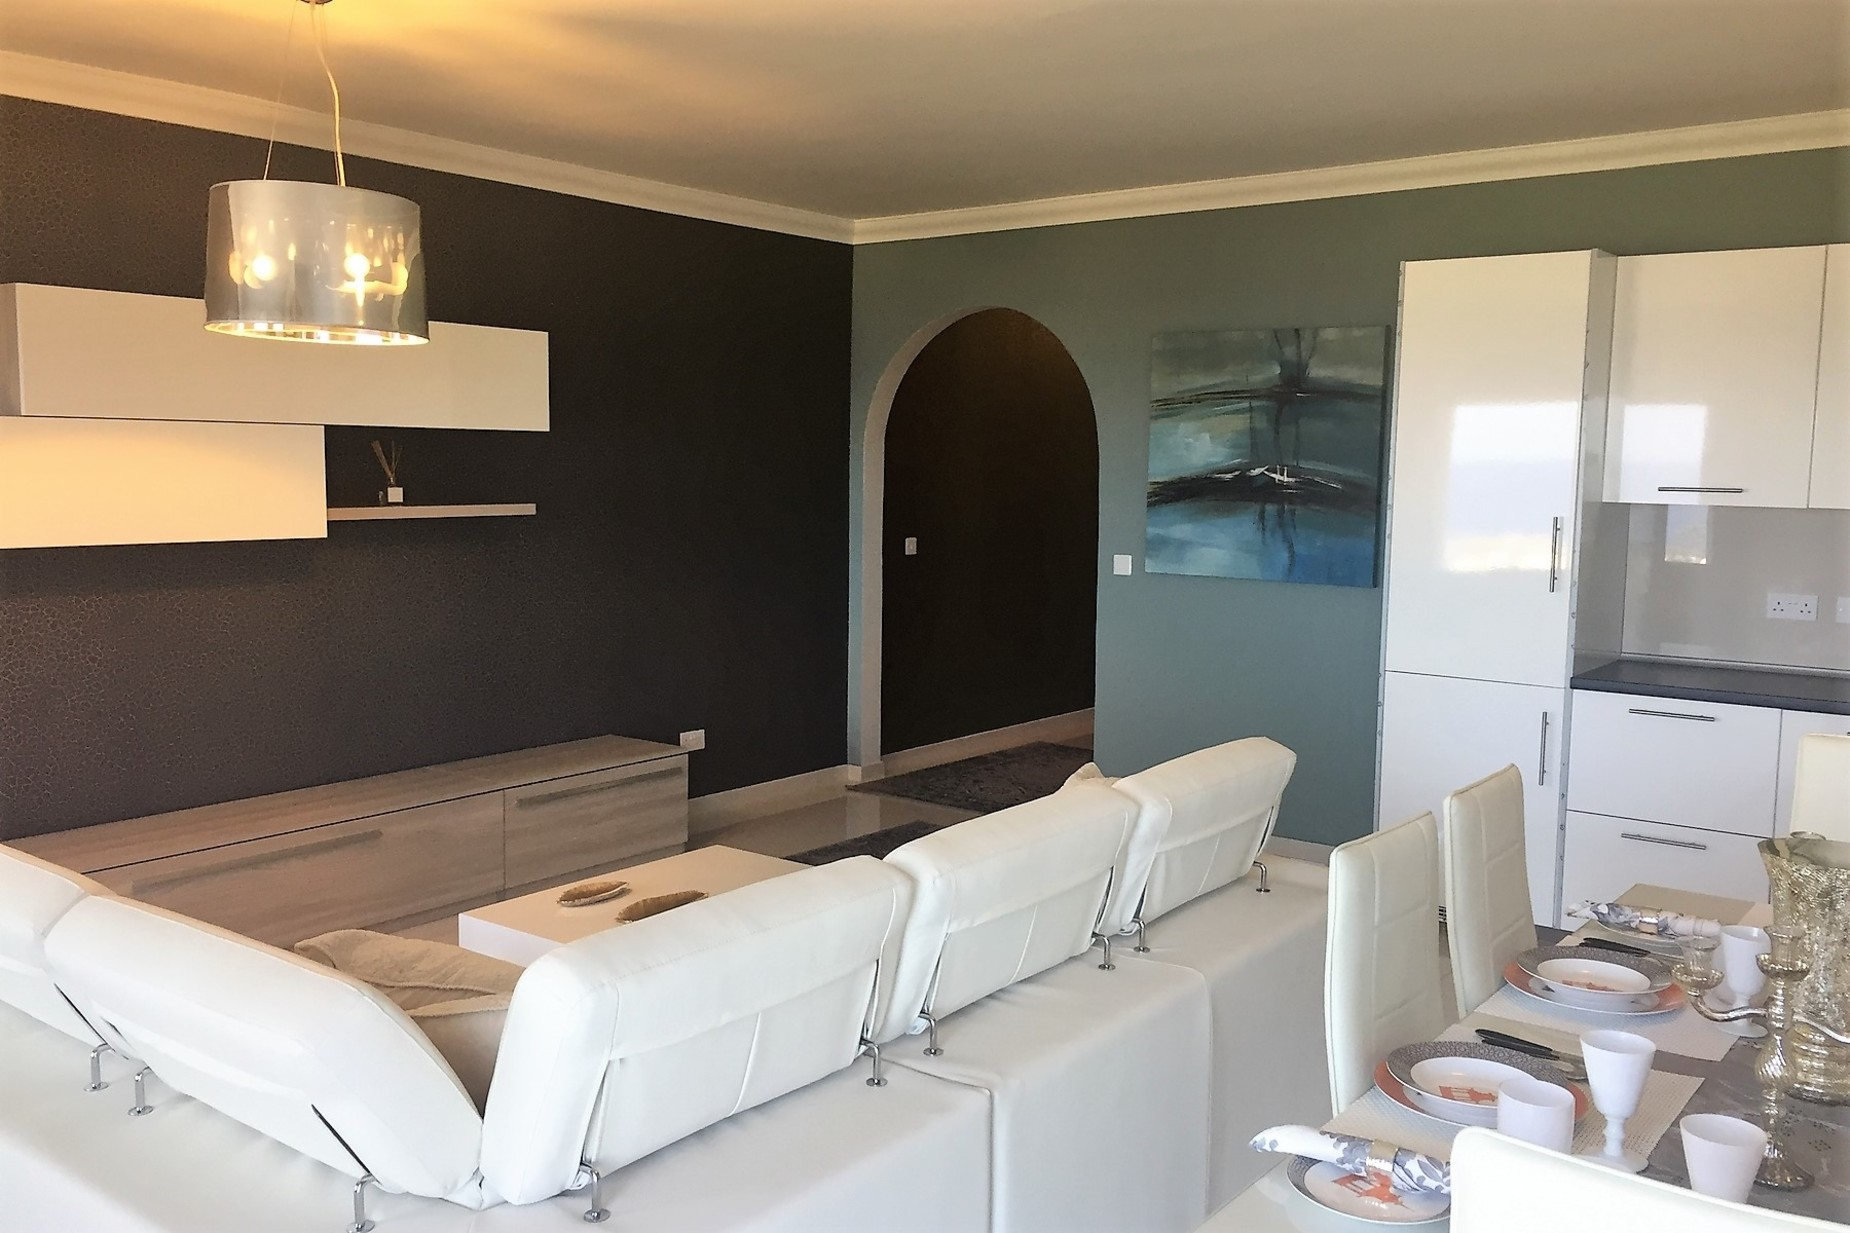 3 bed Apartment For Rent in Madliena, Madliena - thumb 7